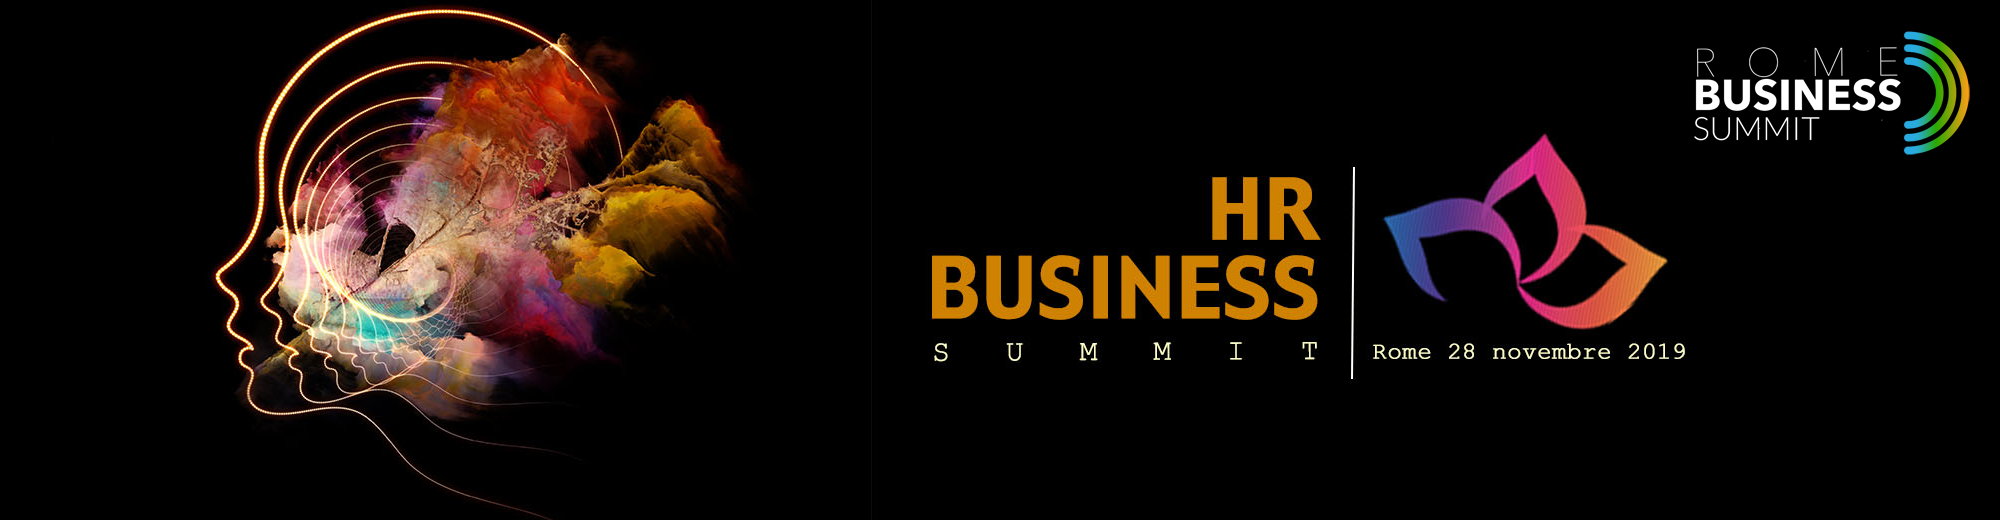 HR Business Summit 2019